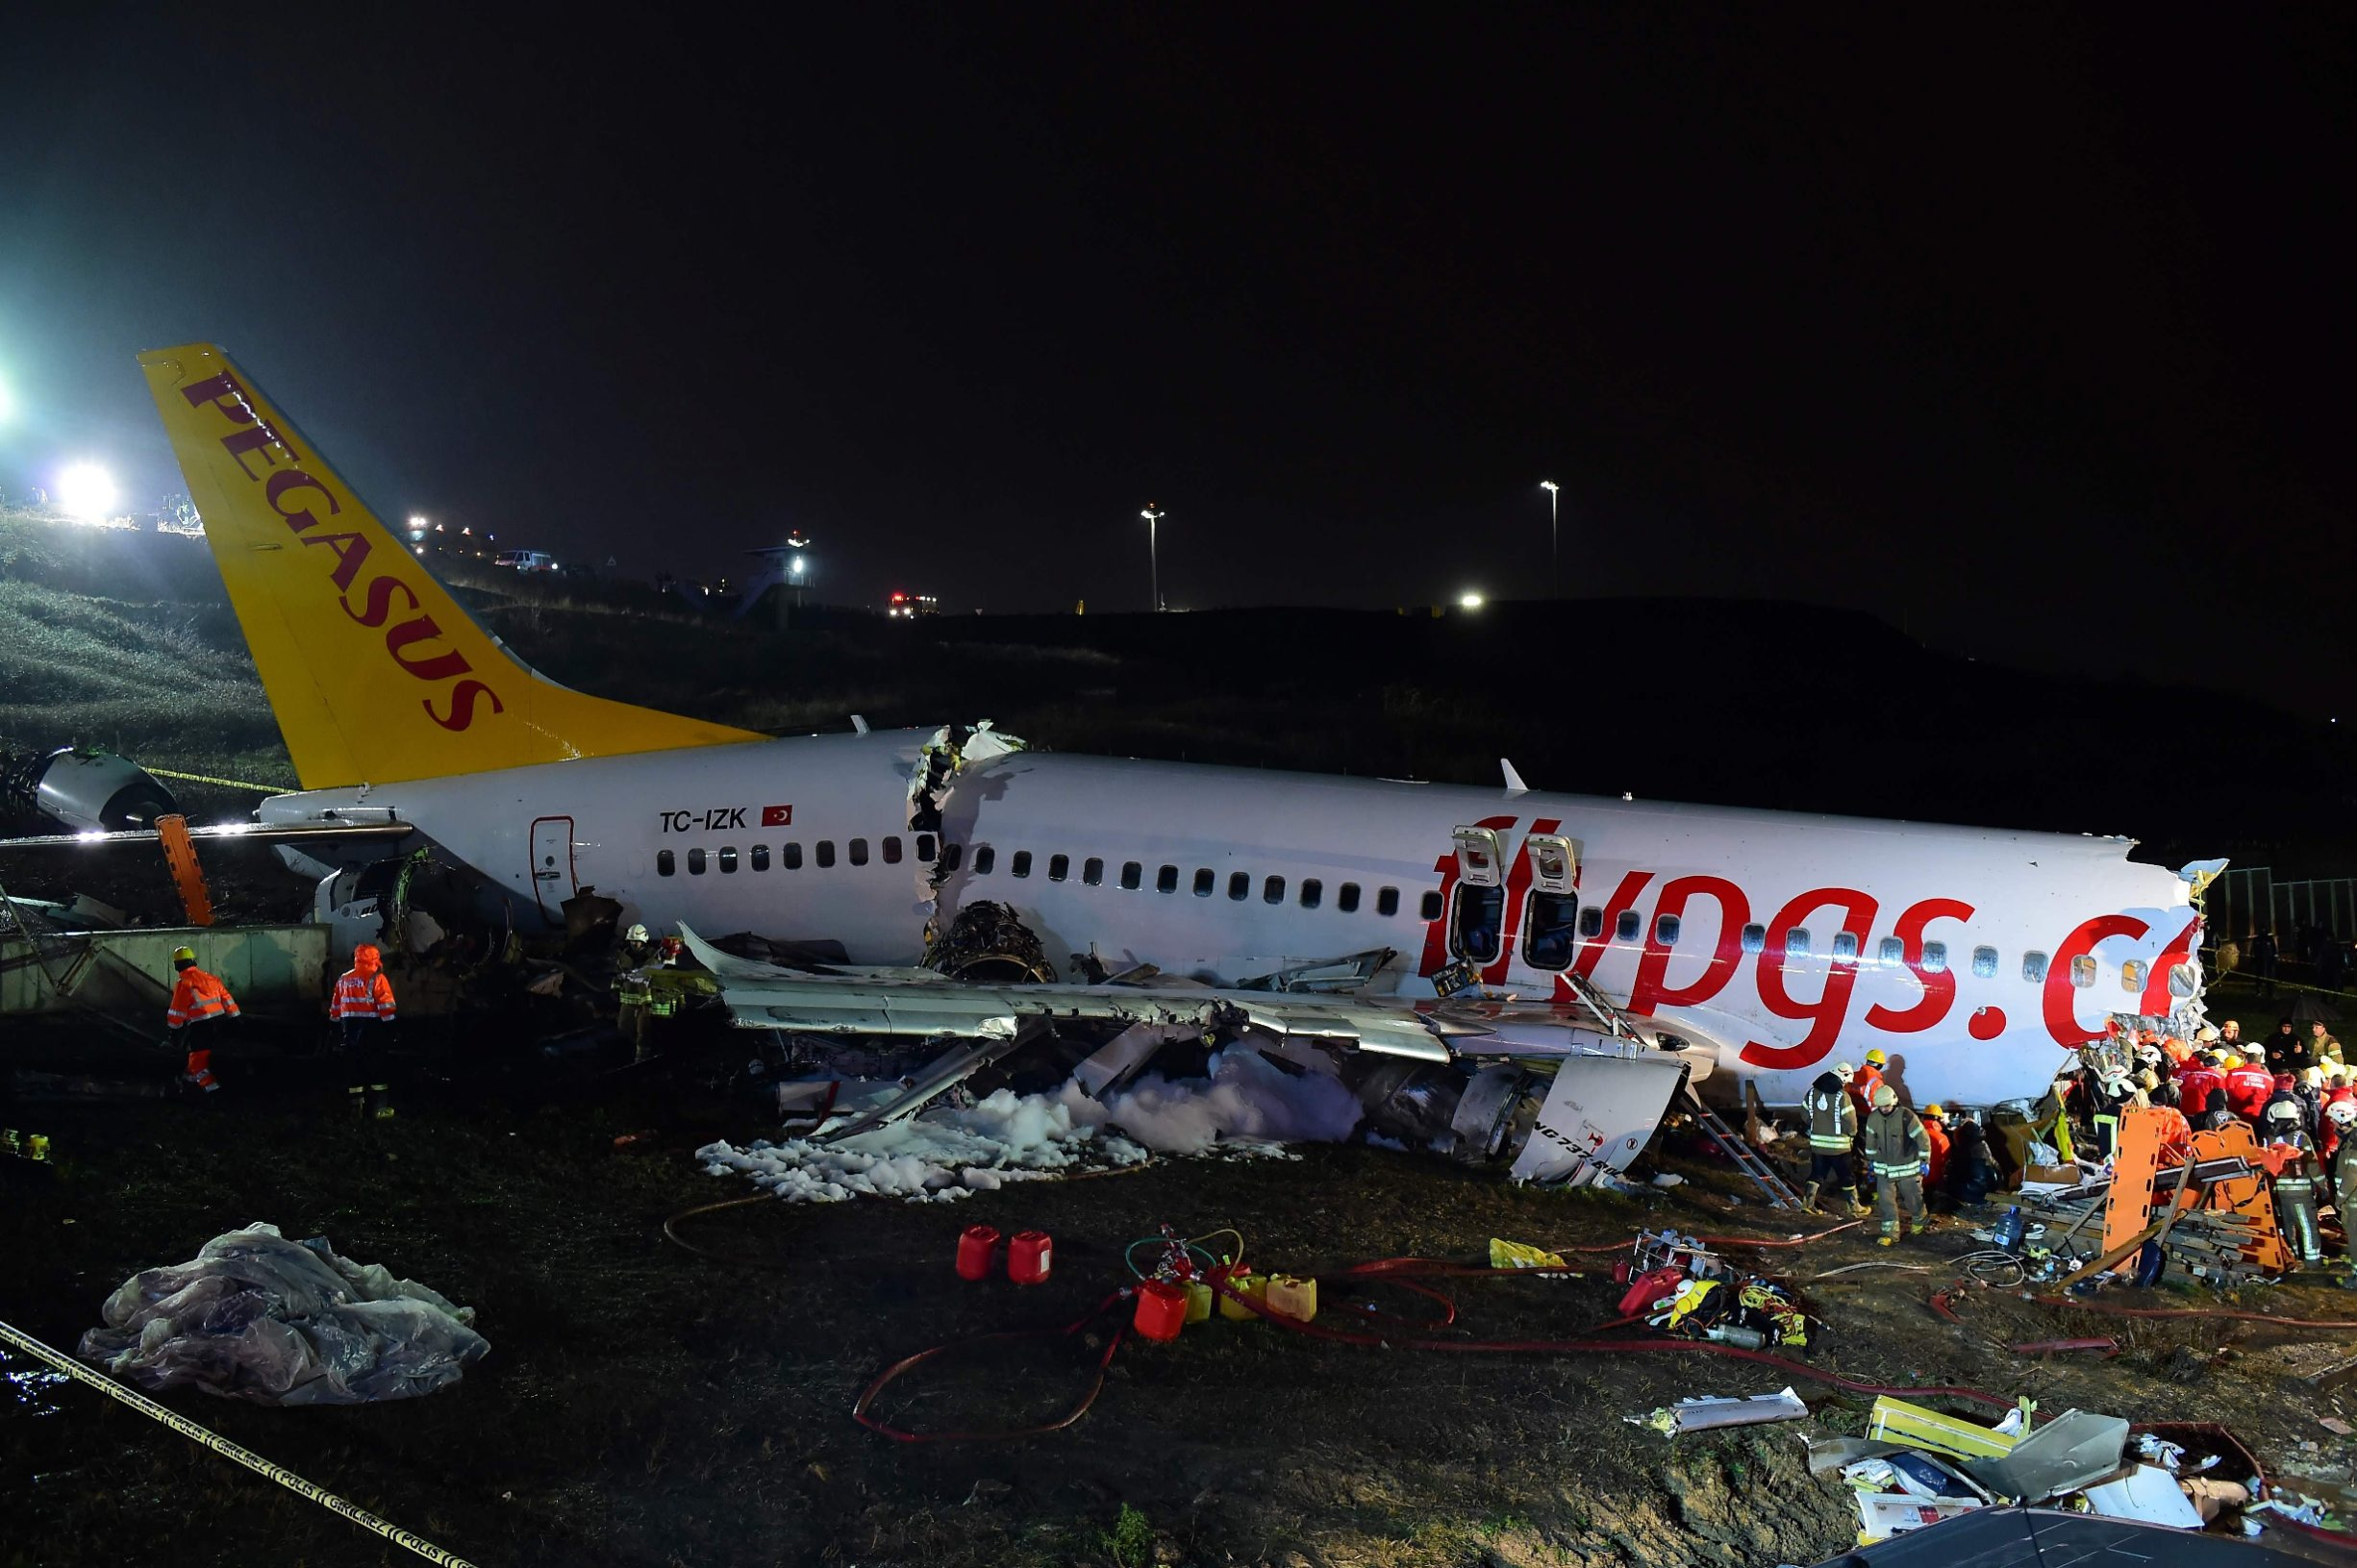 Rescuers work to extract passengers from the crash of a Pegasus Airlines Boeing 737 airplane, after it skidded off the runway upon landing at Sabiha Gokcen airport in Istanbul on February 5, 2020. - The plane carrying 171 passengers from the Aegean port city of Izmir split into three after landing in rough weather. Officials said no-one had lost their lives in the accident, but dozens of people were injured. (Photo by Yasin AKGUL / AFP)